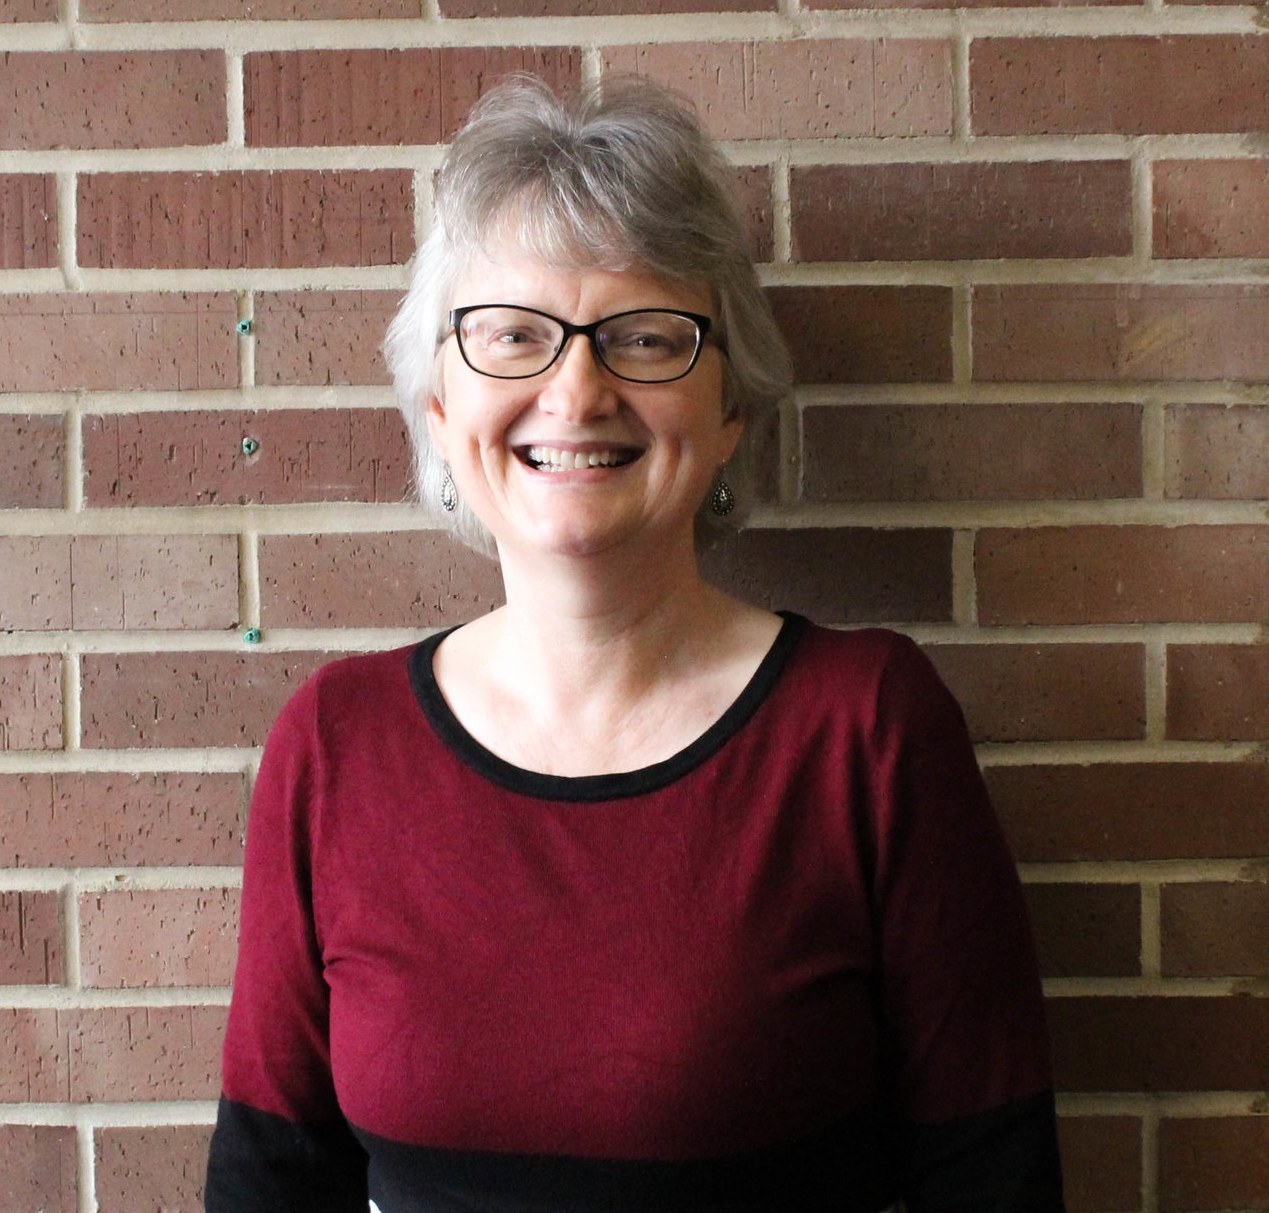 Julie Stevens, Host of Gloria Dei's Looking Within Podcast